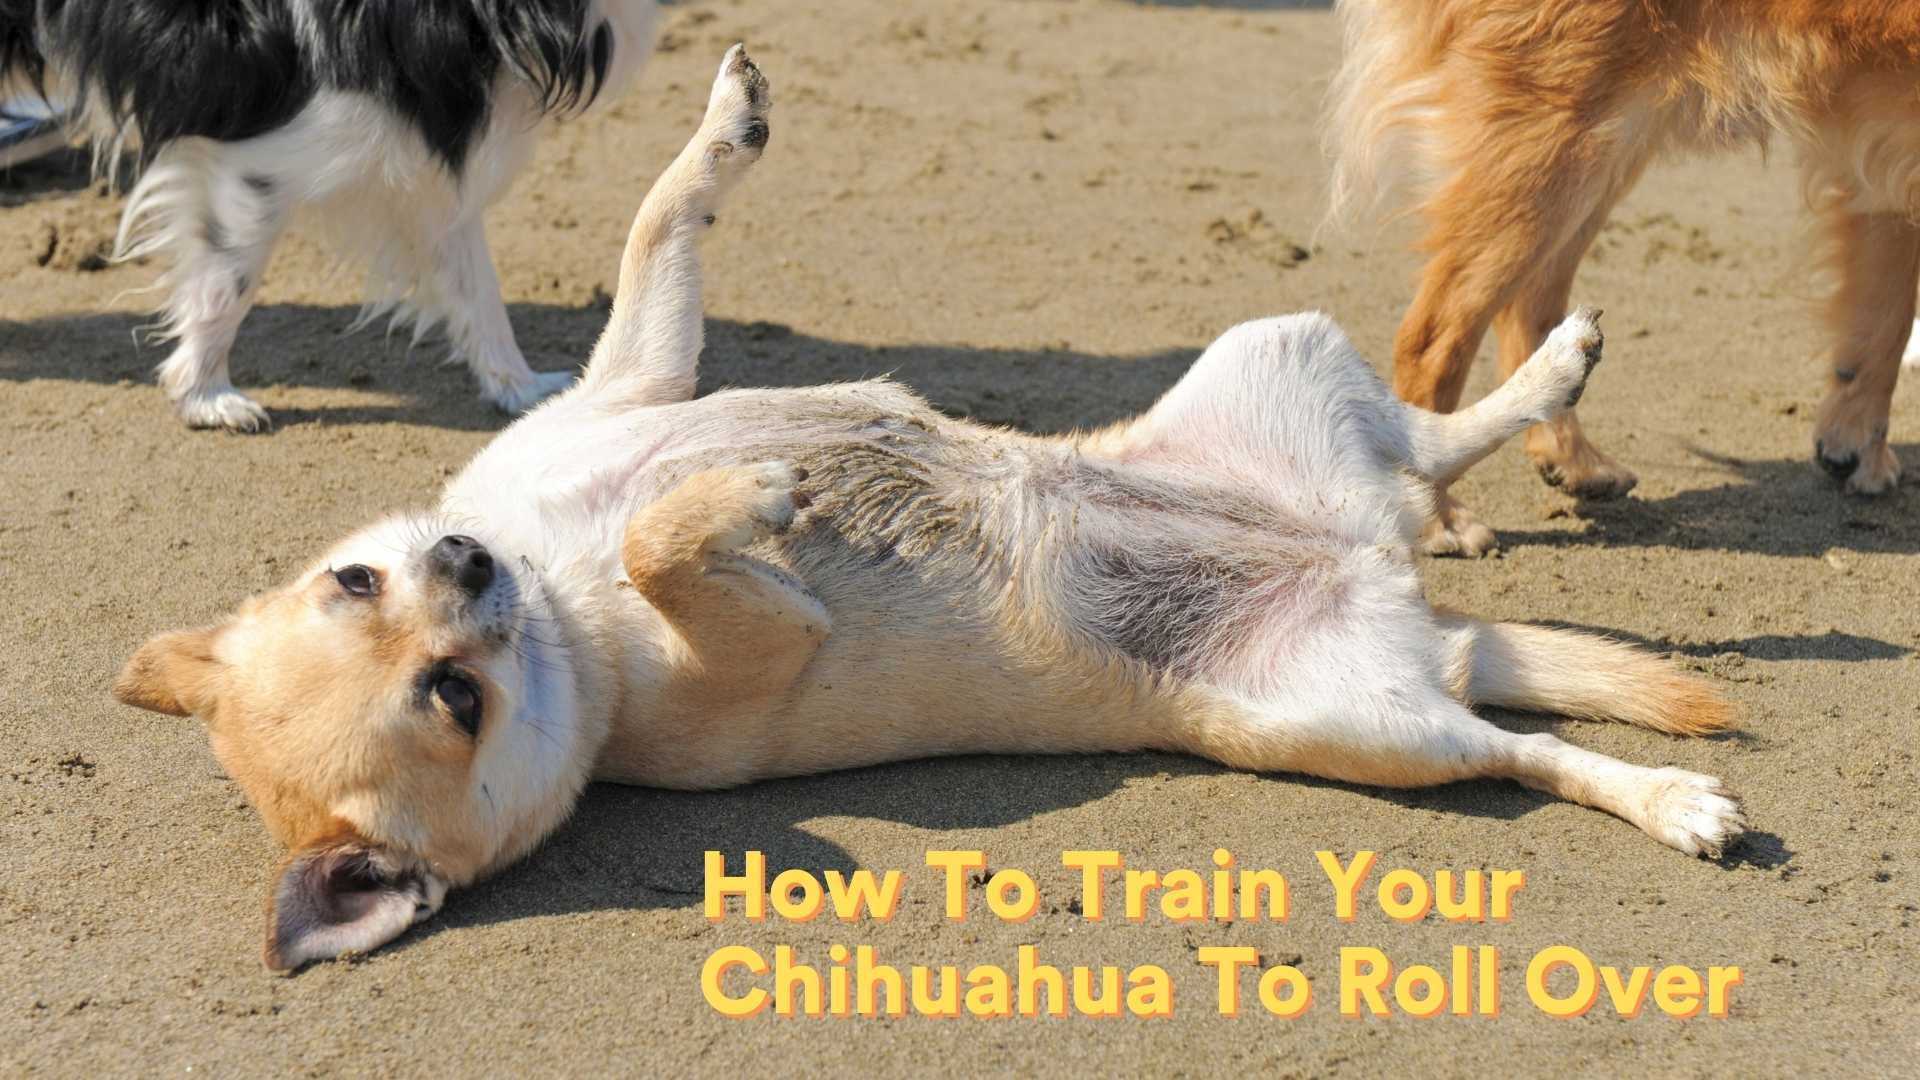 How To Train Your Chihuahua To Roll Over